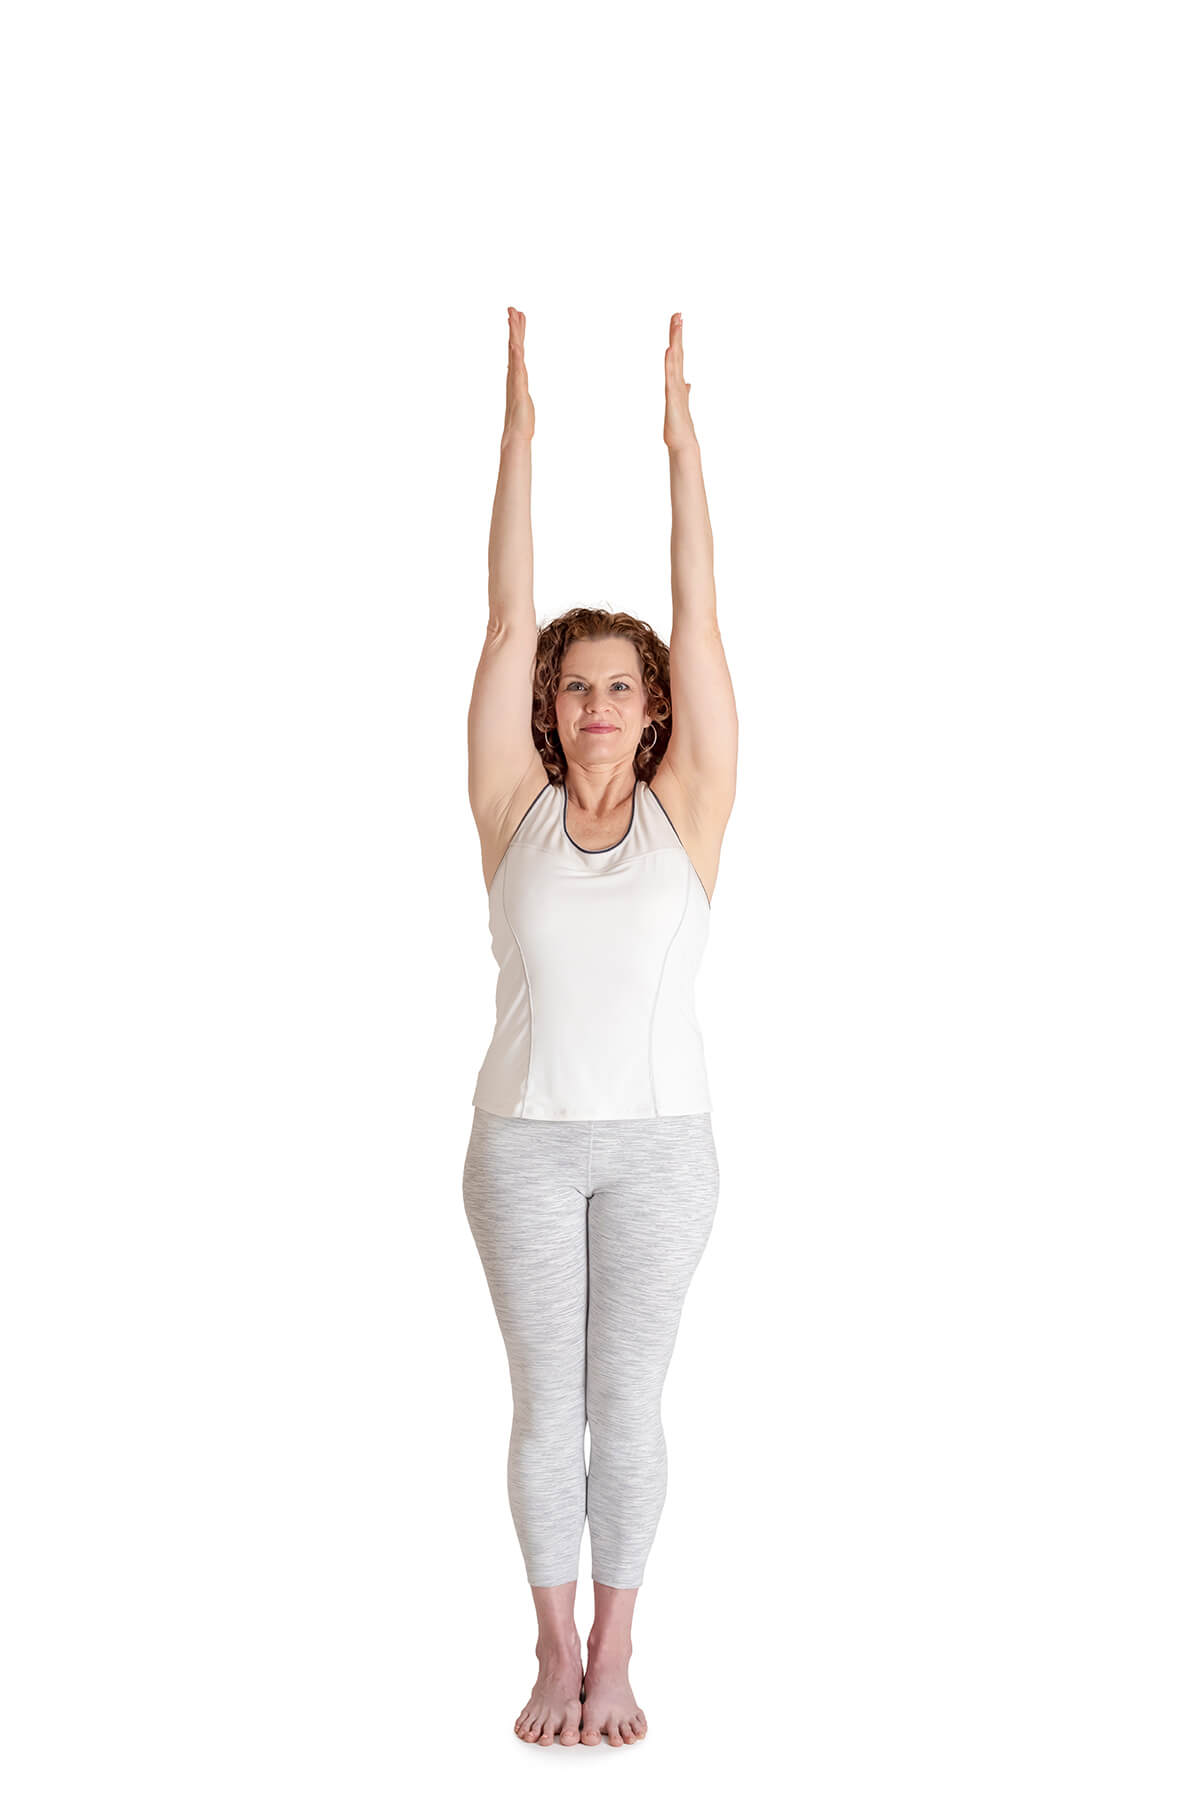 arm sweep arms up yoga exercise